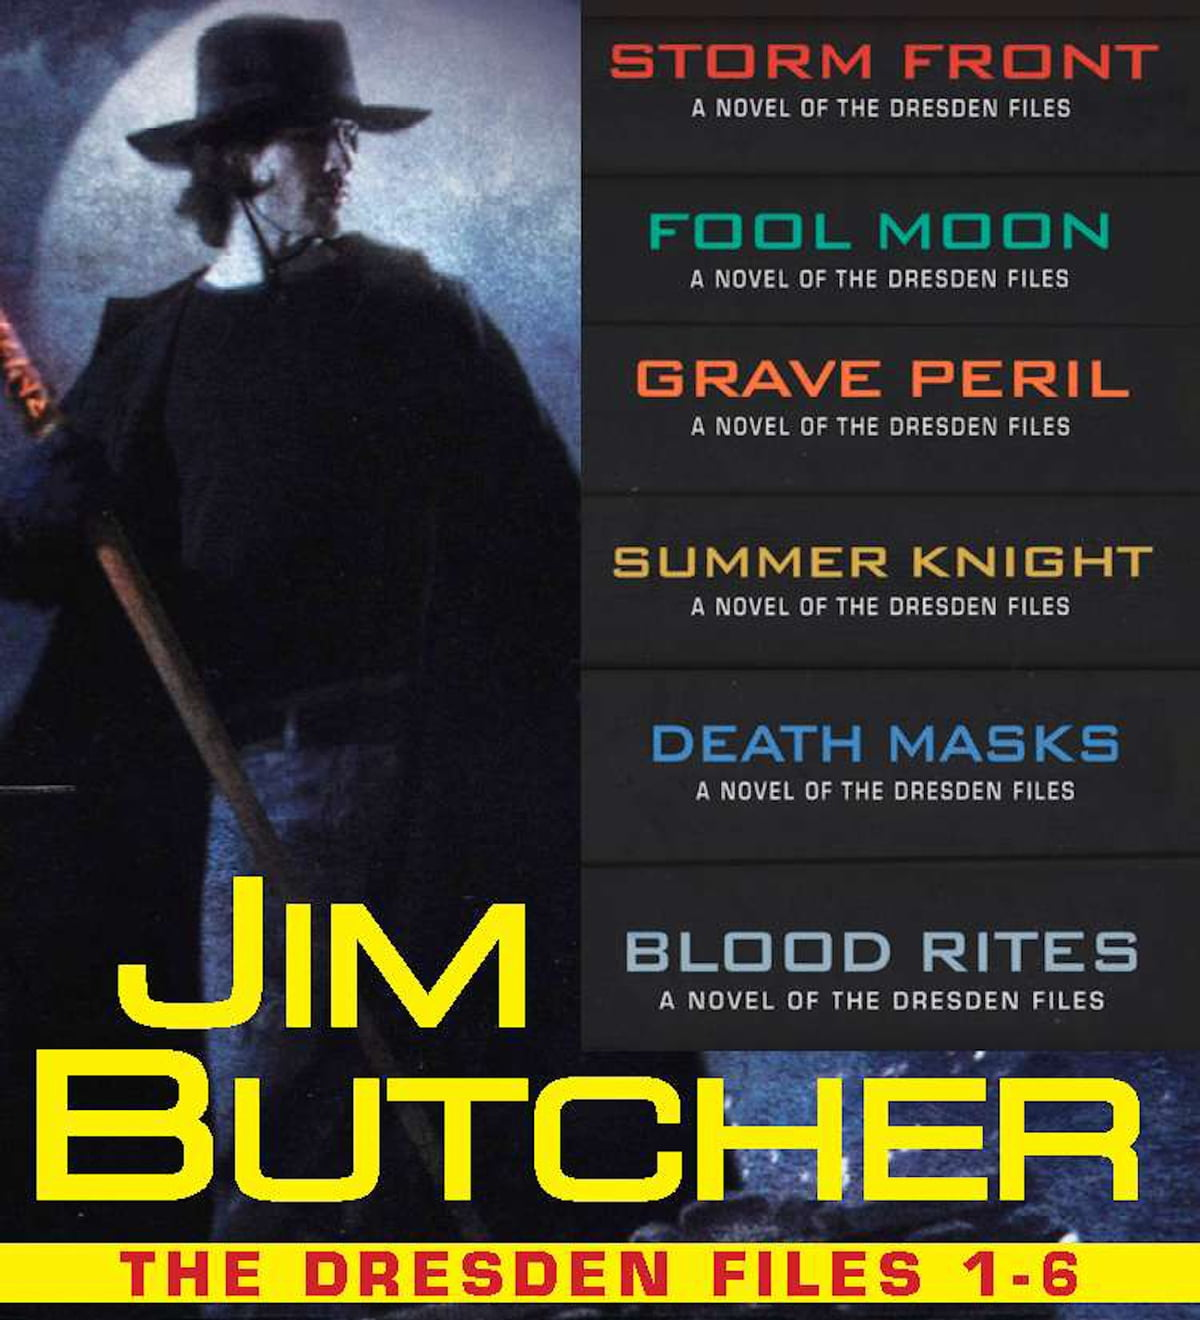 The Dresden Files Collection 1-6 eBook by Jim Butcher - 9781101499689 |  Rakuten Kobo